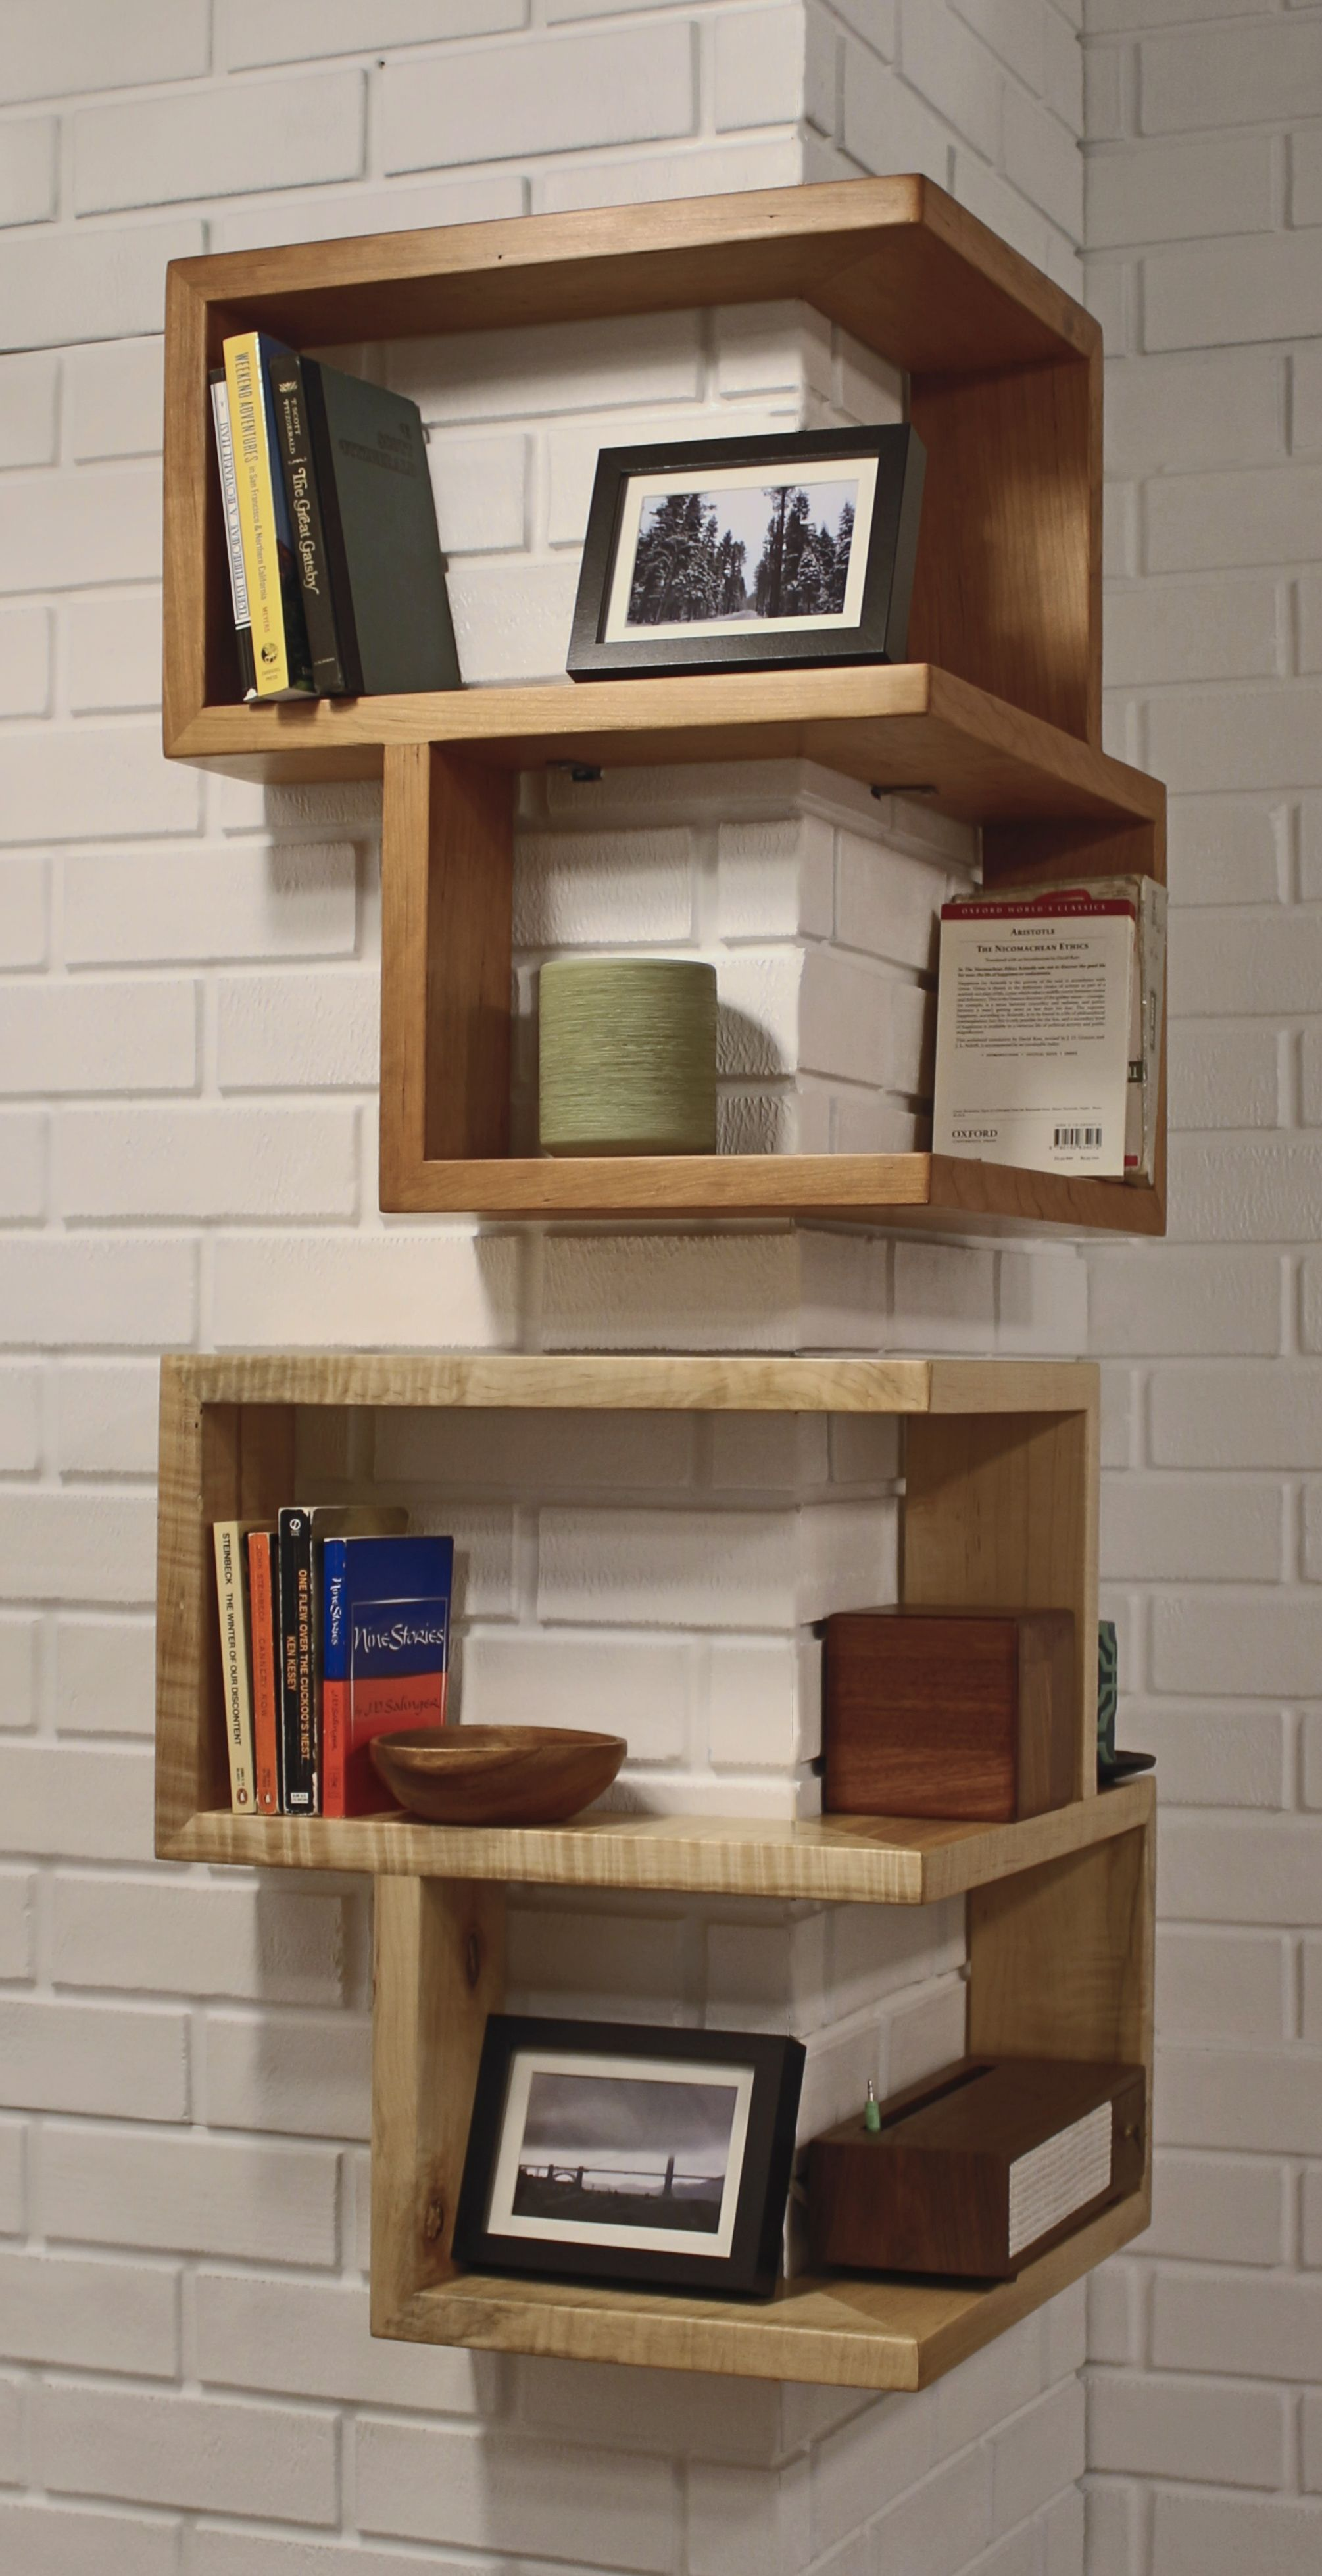 Bücherregal Modernes Design 20 Diy Projects To Make Your Home Look Classy Yy Möbel